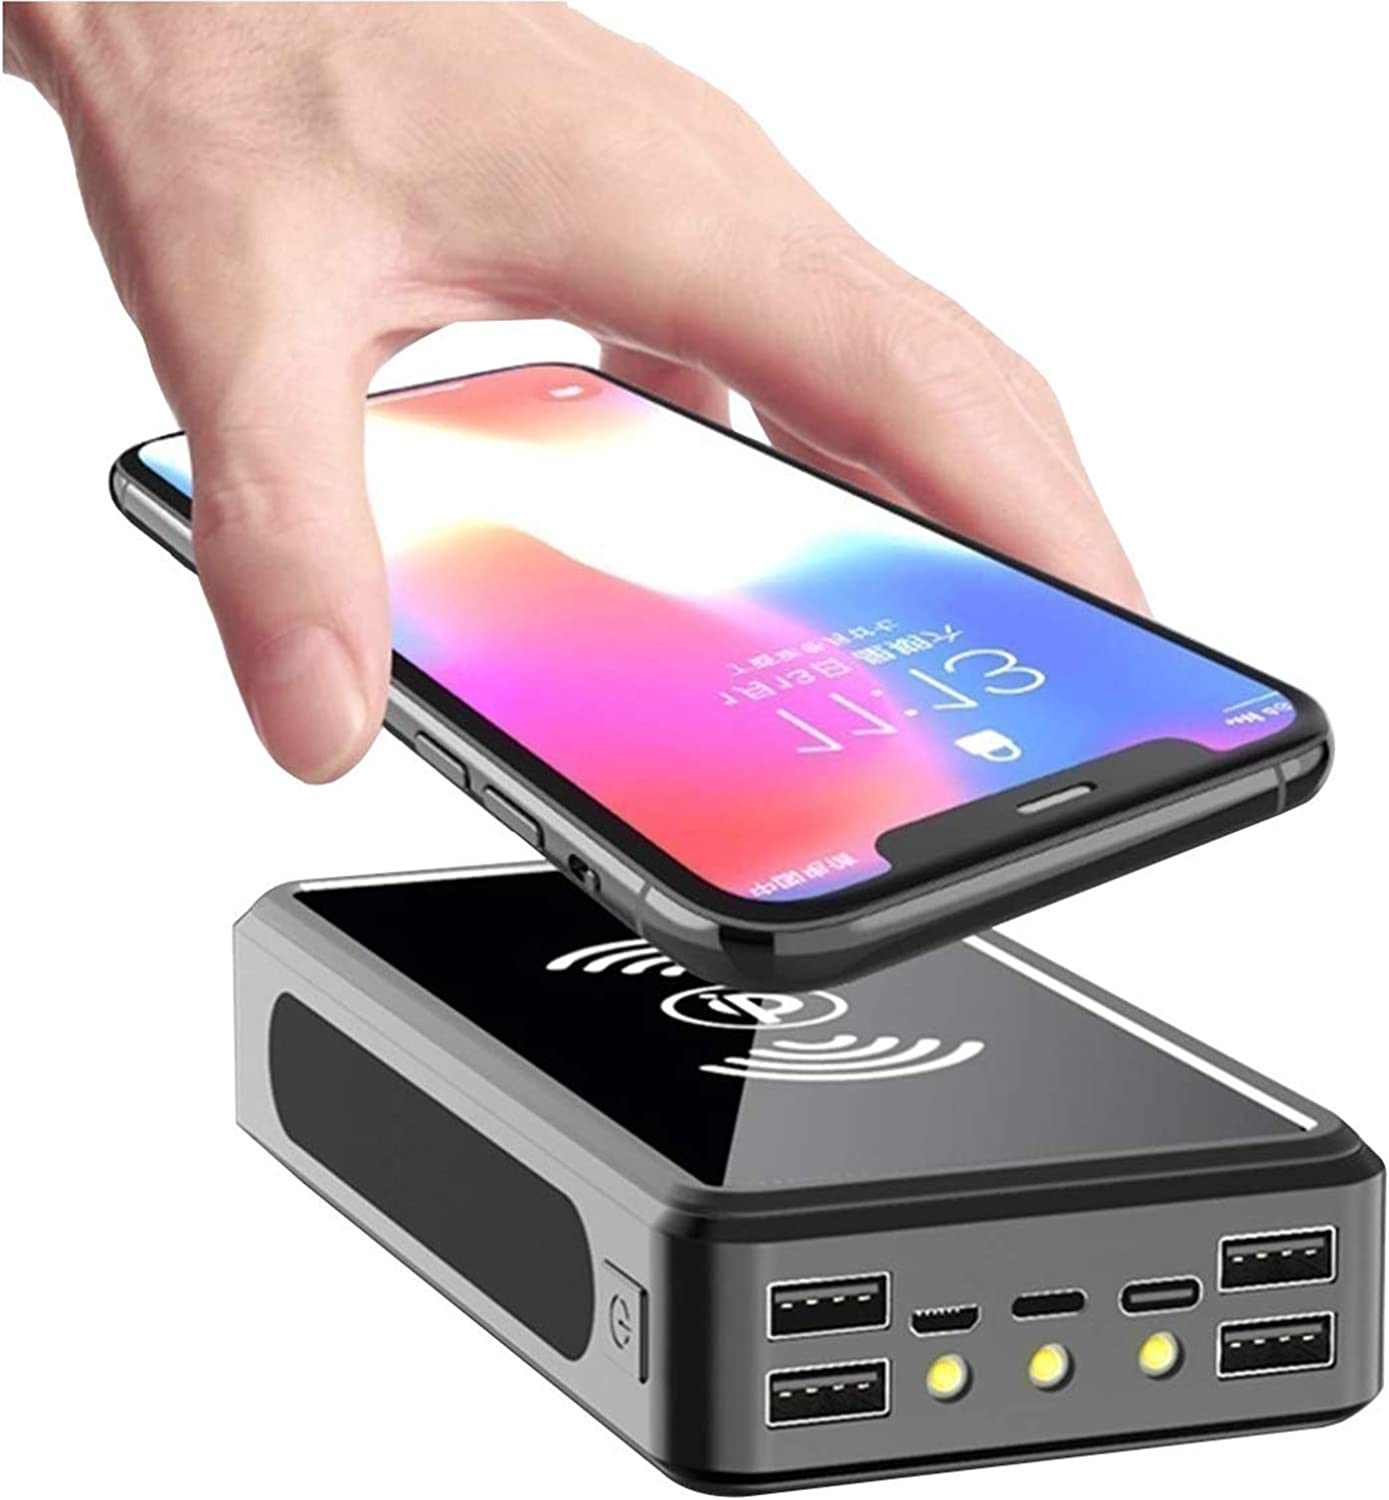 Sale SALE% OFF Wttfc Wireless Fees free!! Solar Power Charger Bank 1000000Mah